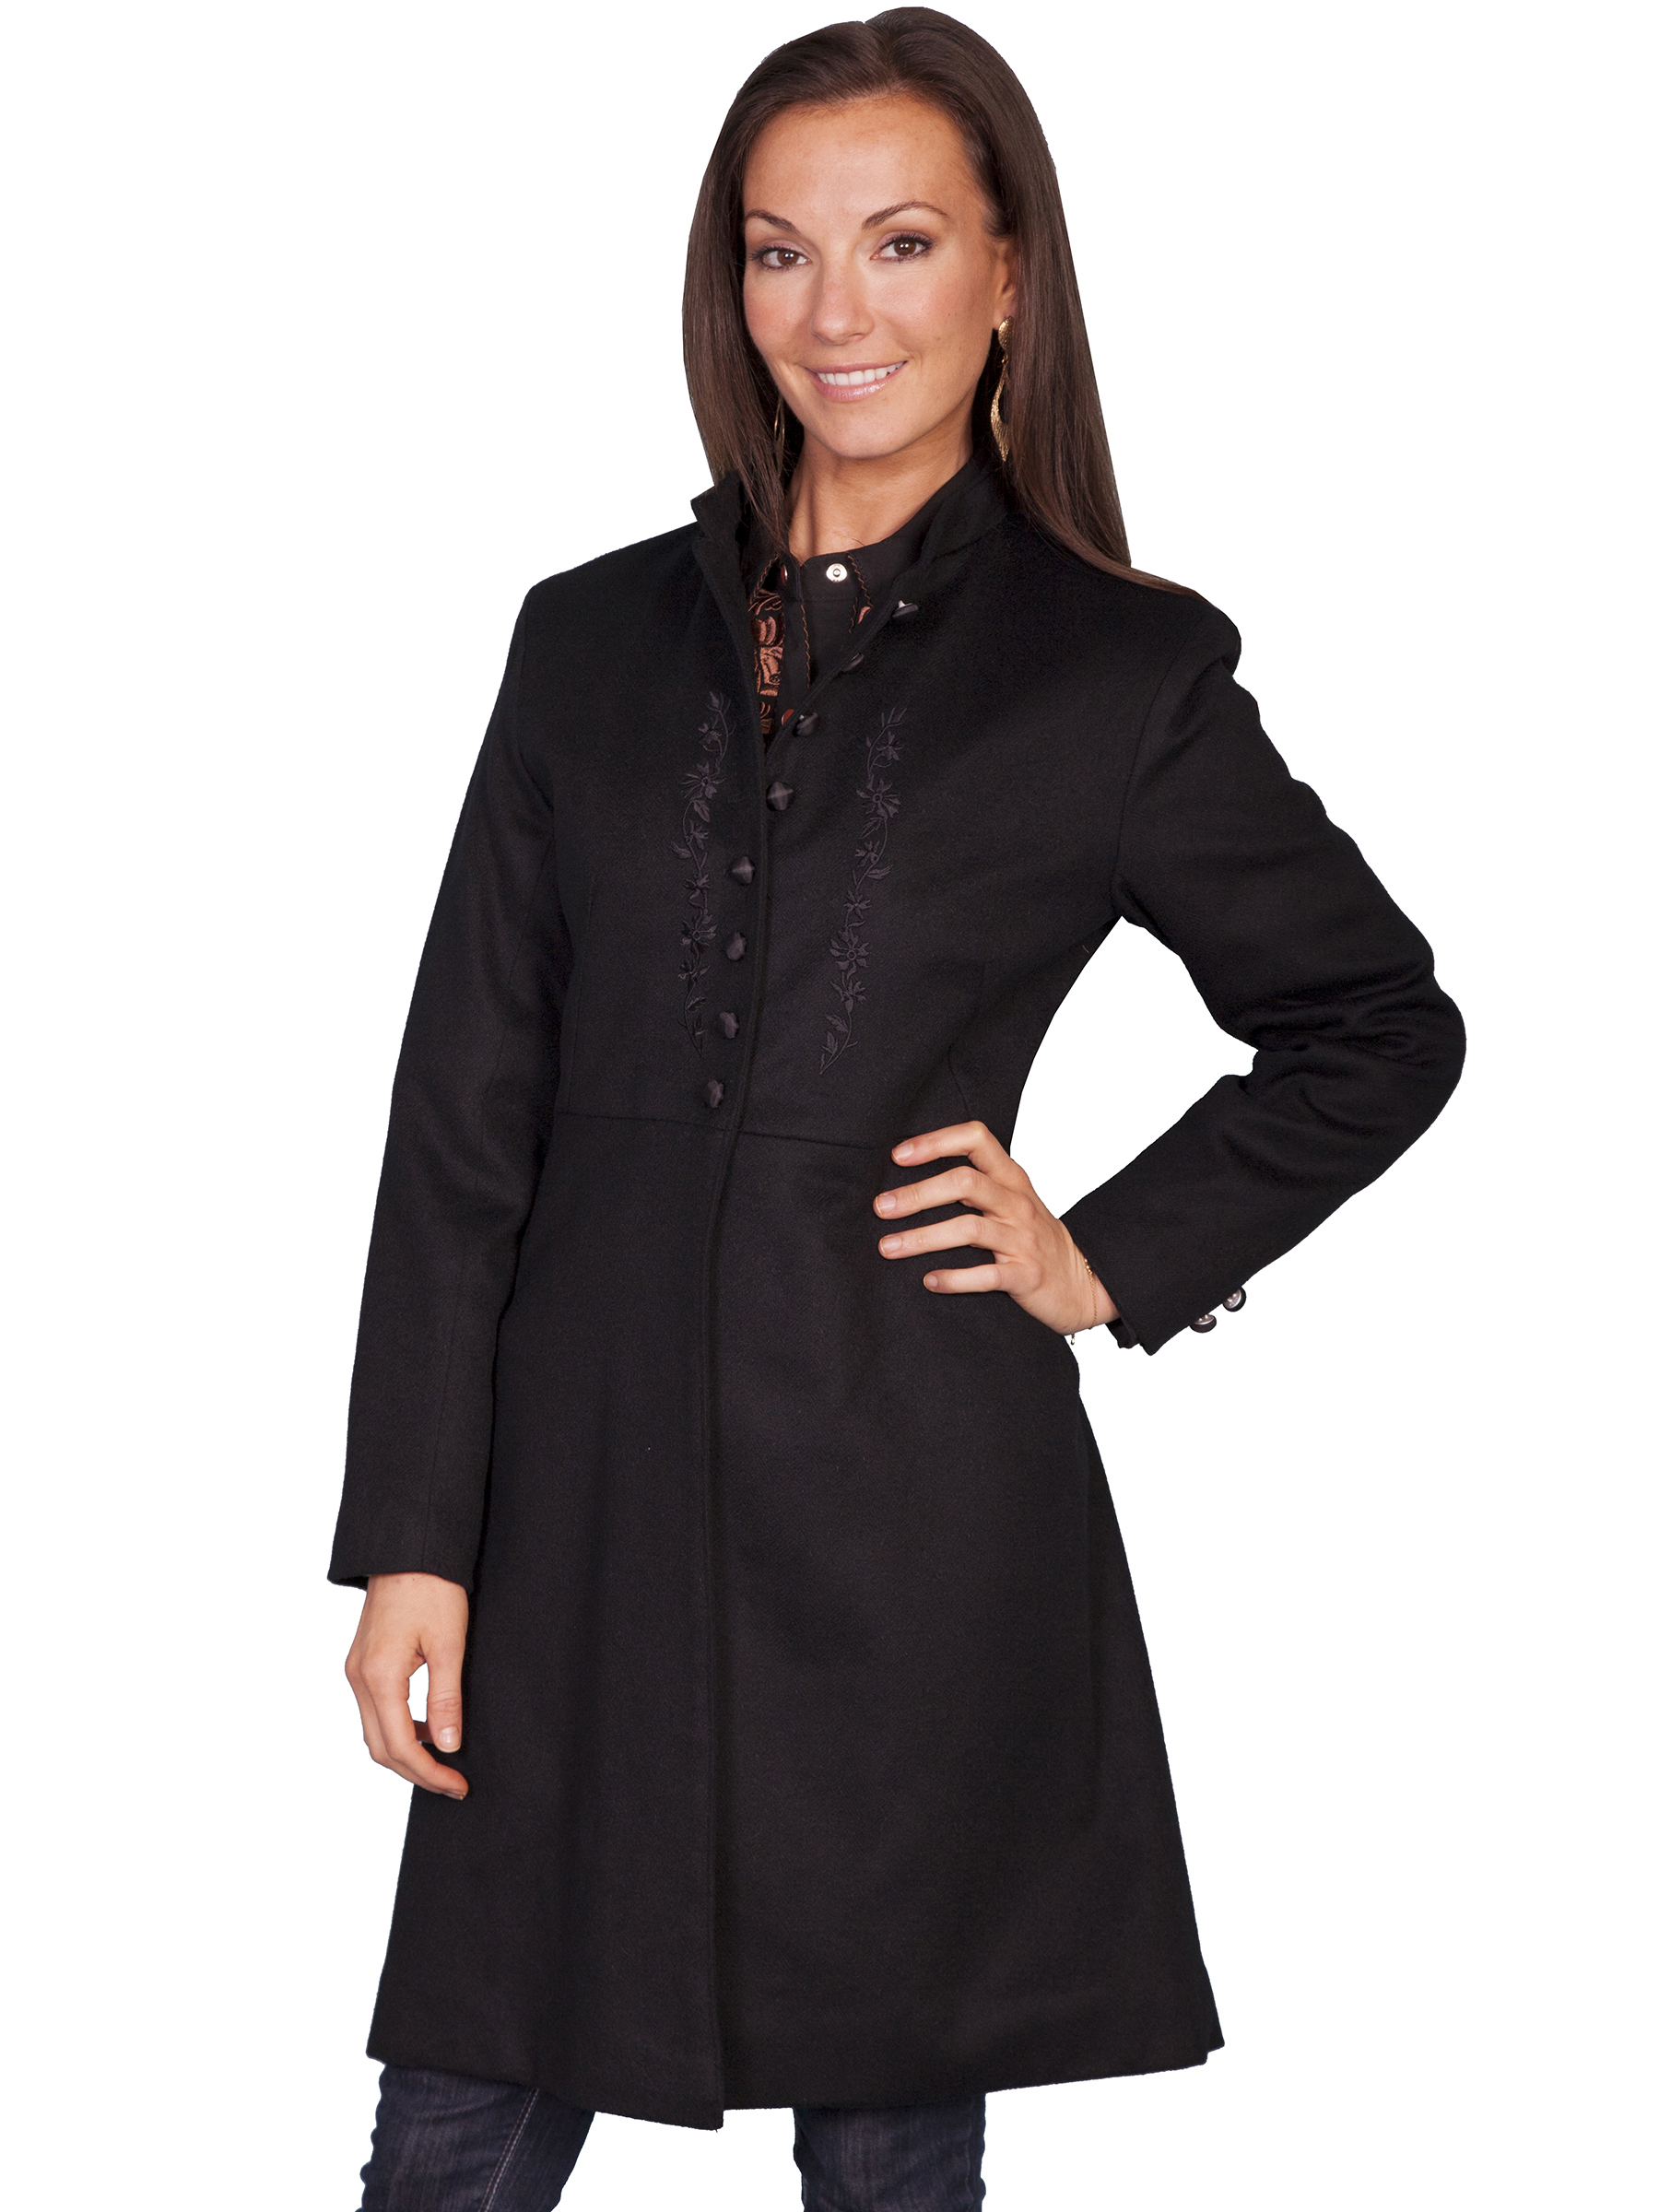 LADIES EMBROIDERED FROCK COAT